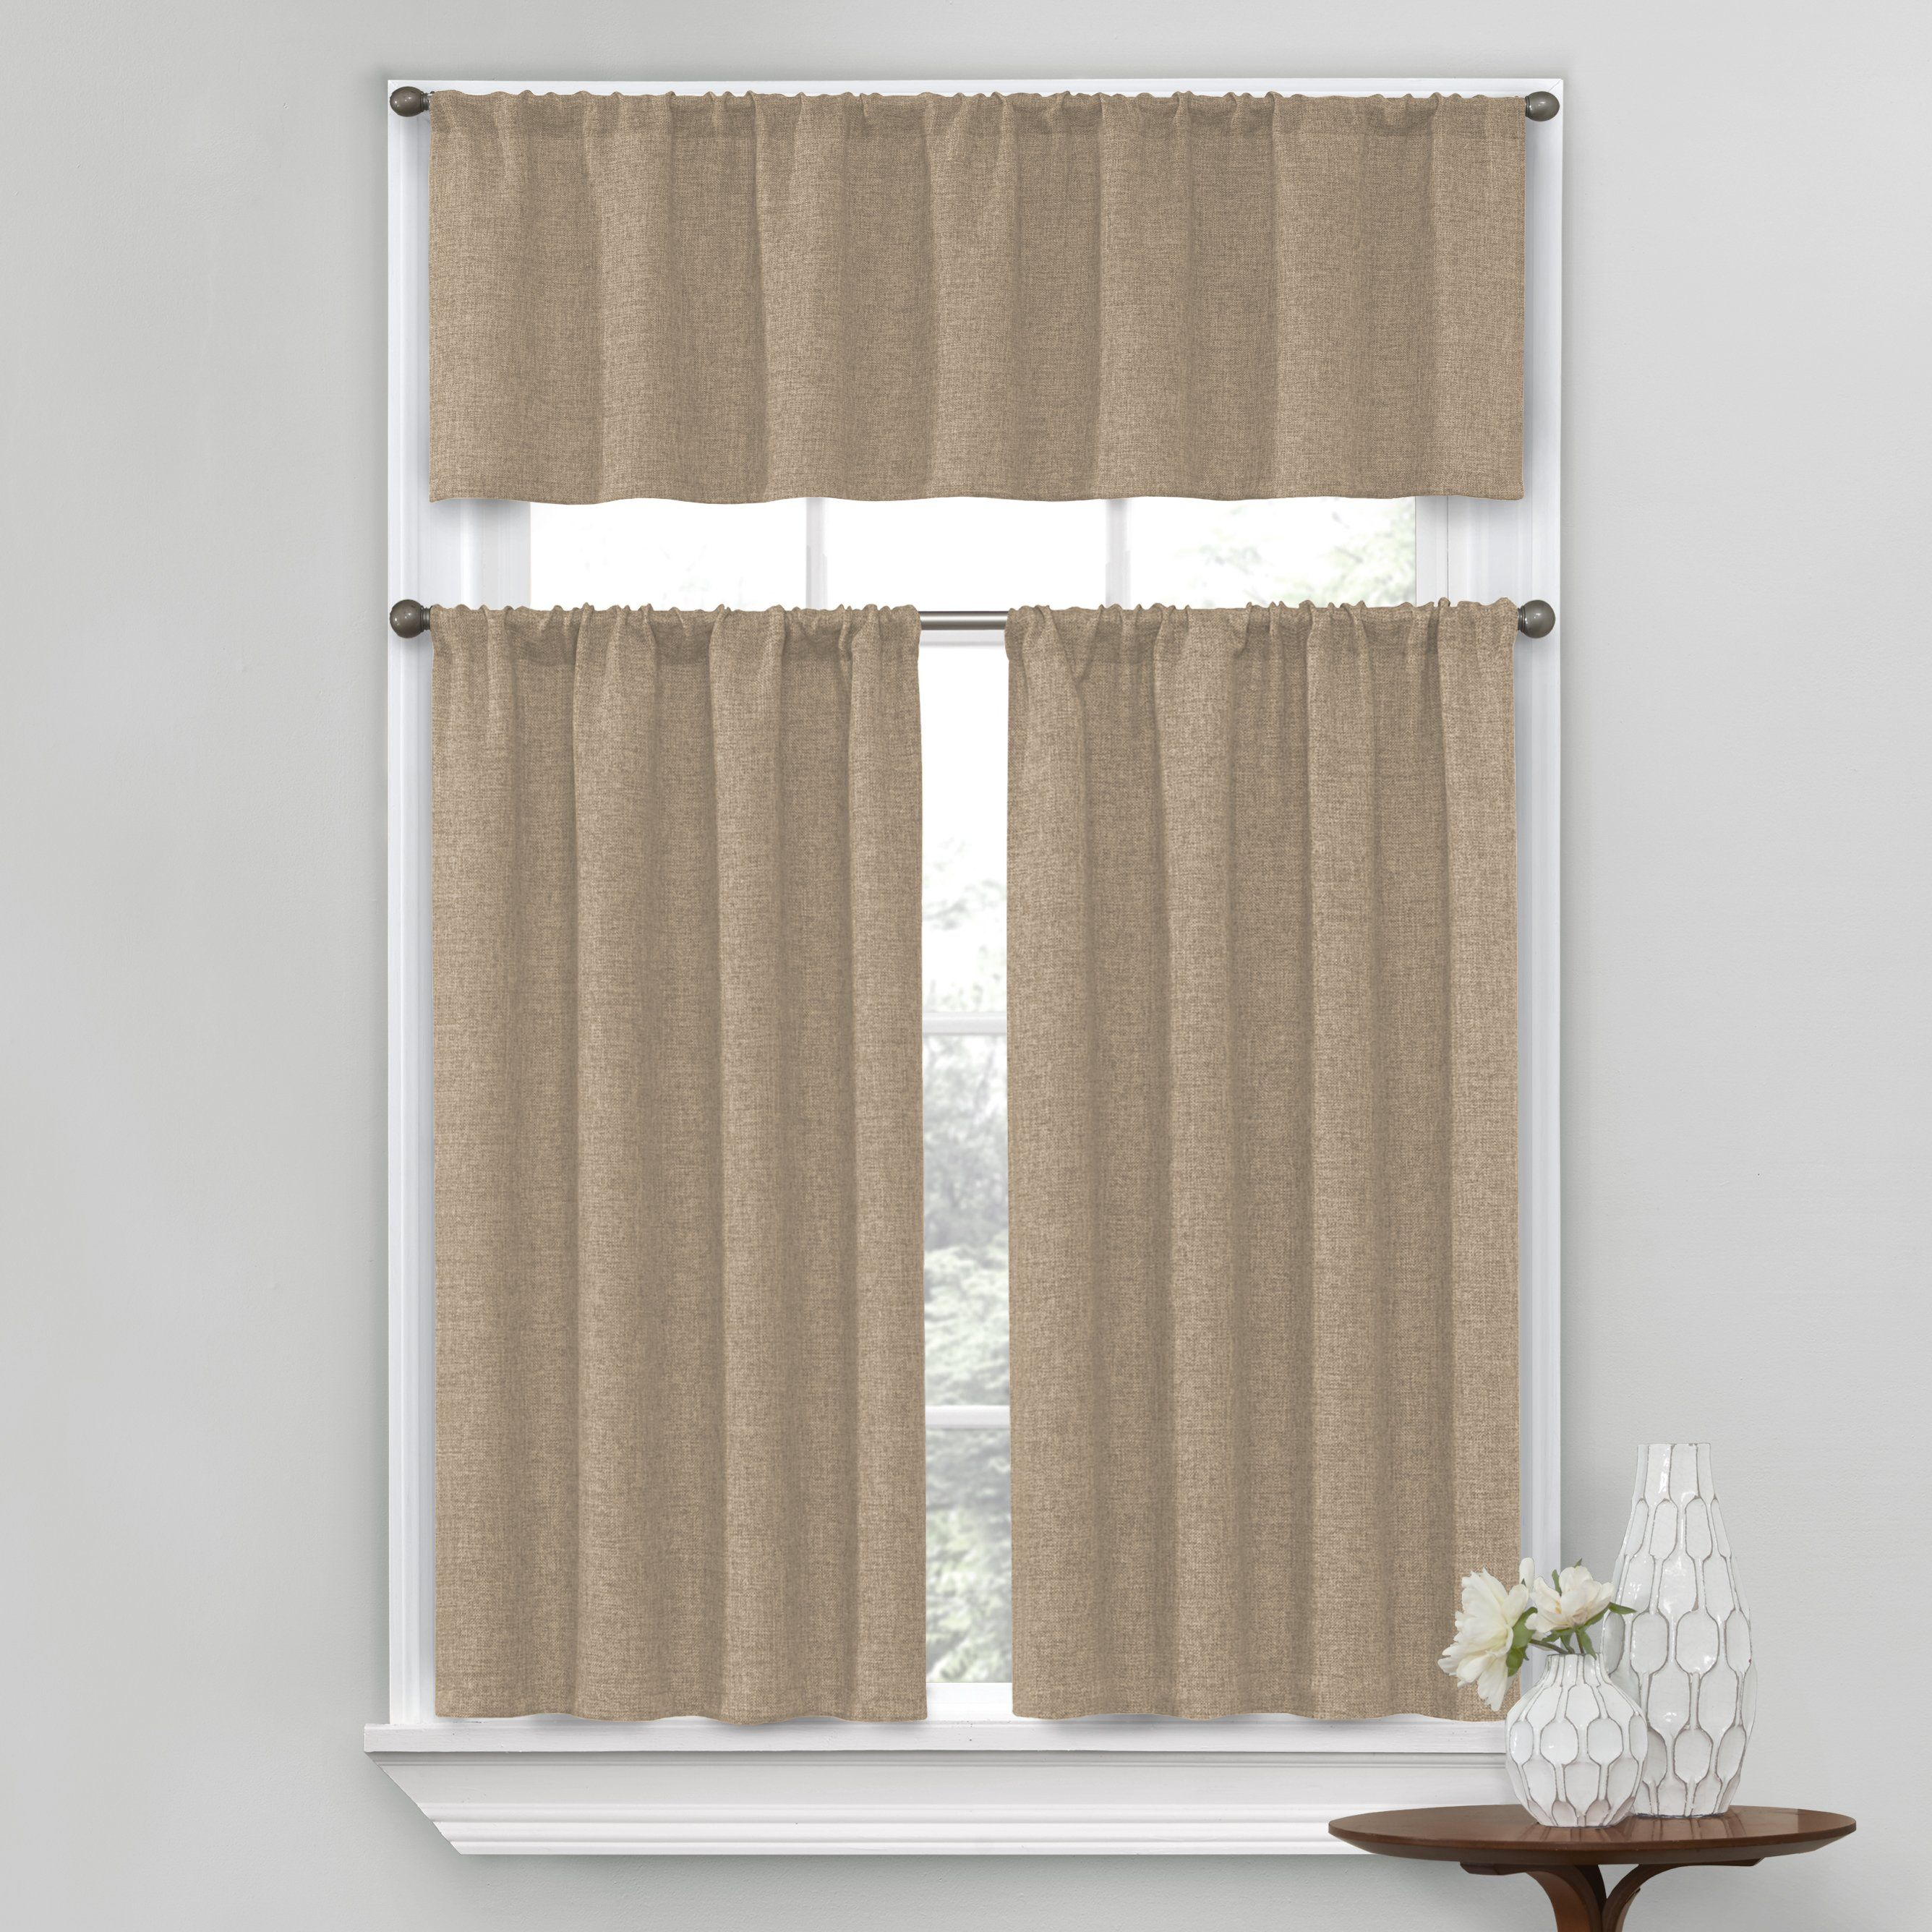 c0d312e98b1a3878d325d279b5fe4c70 - Better Homes And Gardens Cafe Kitchen Curtain Set